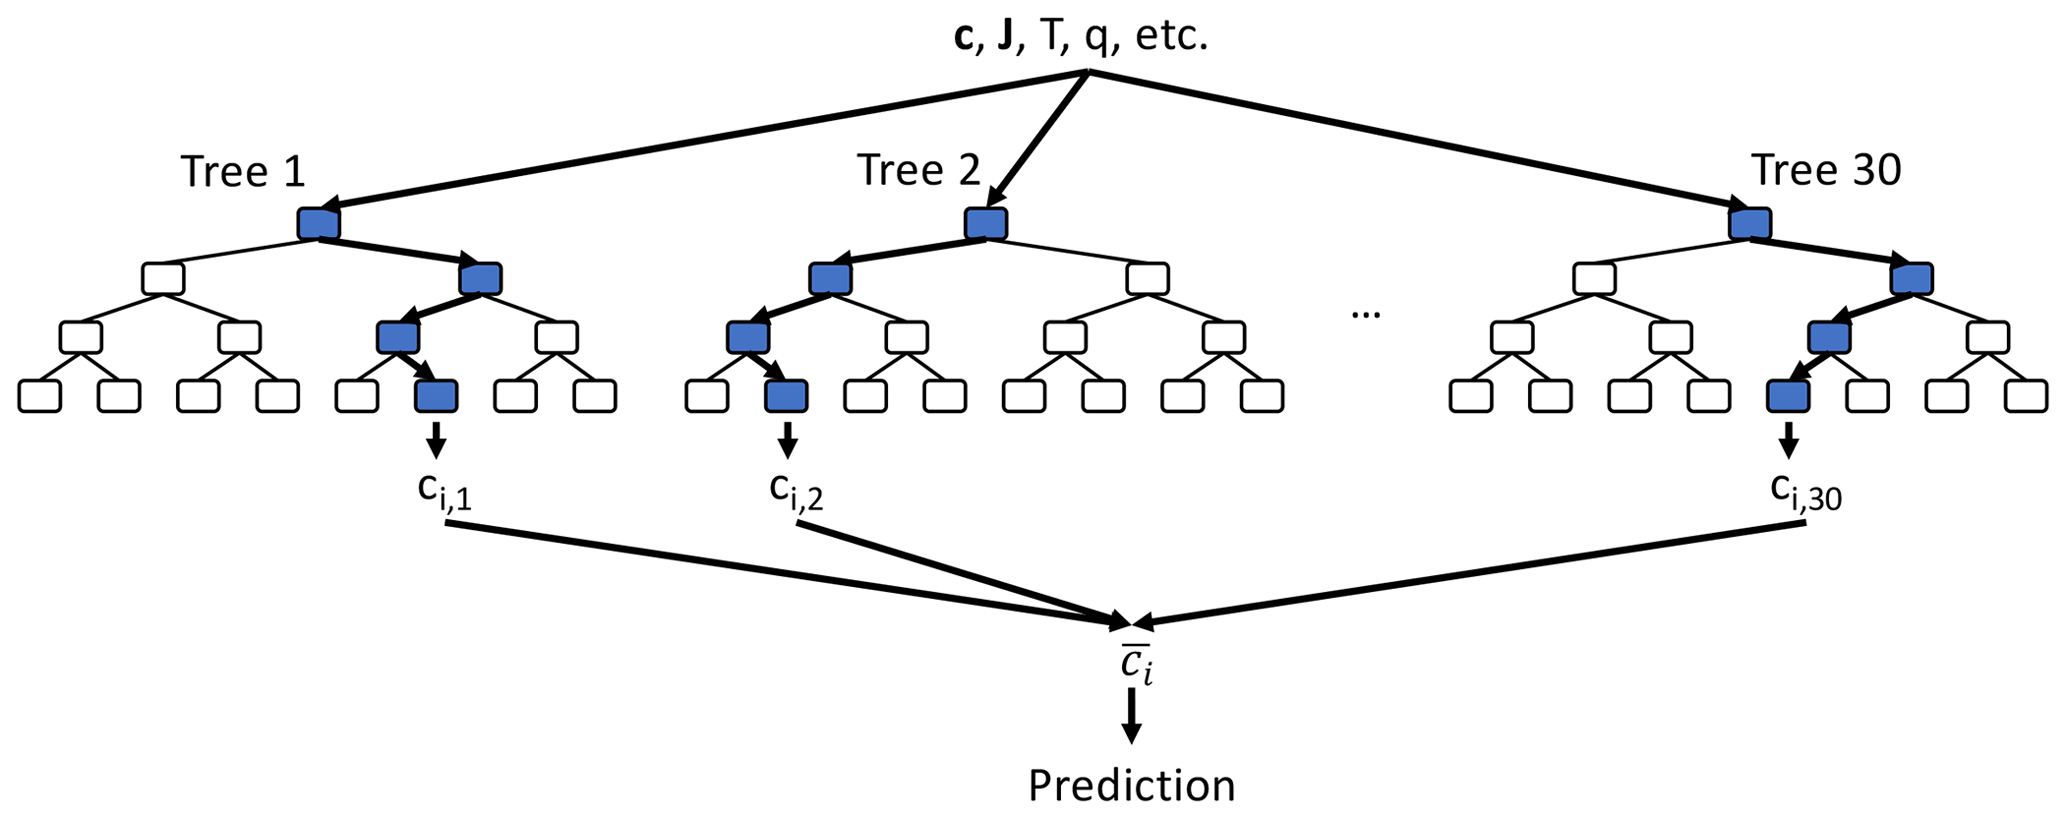 GMD - Application of random forest regression to the